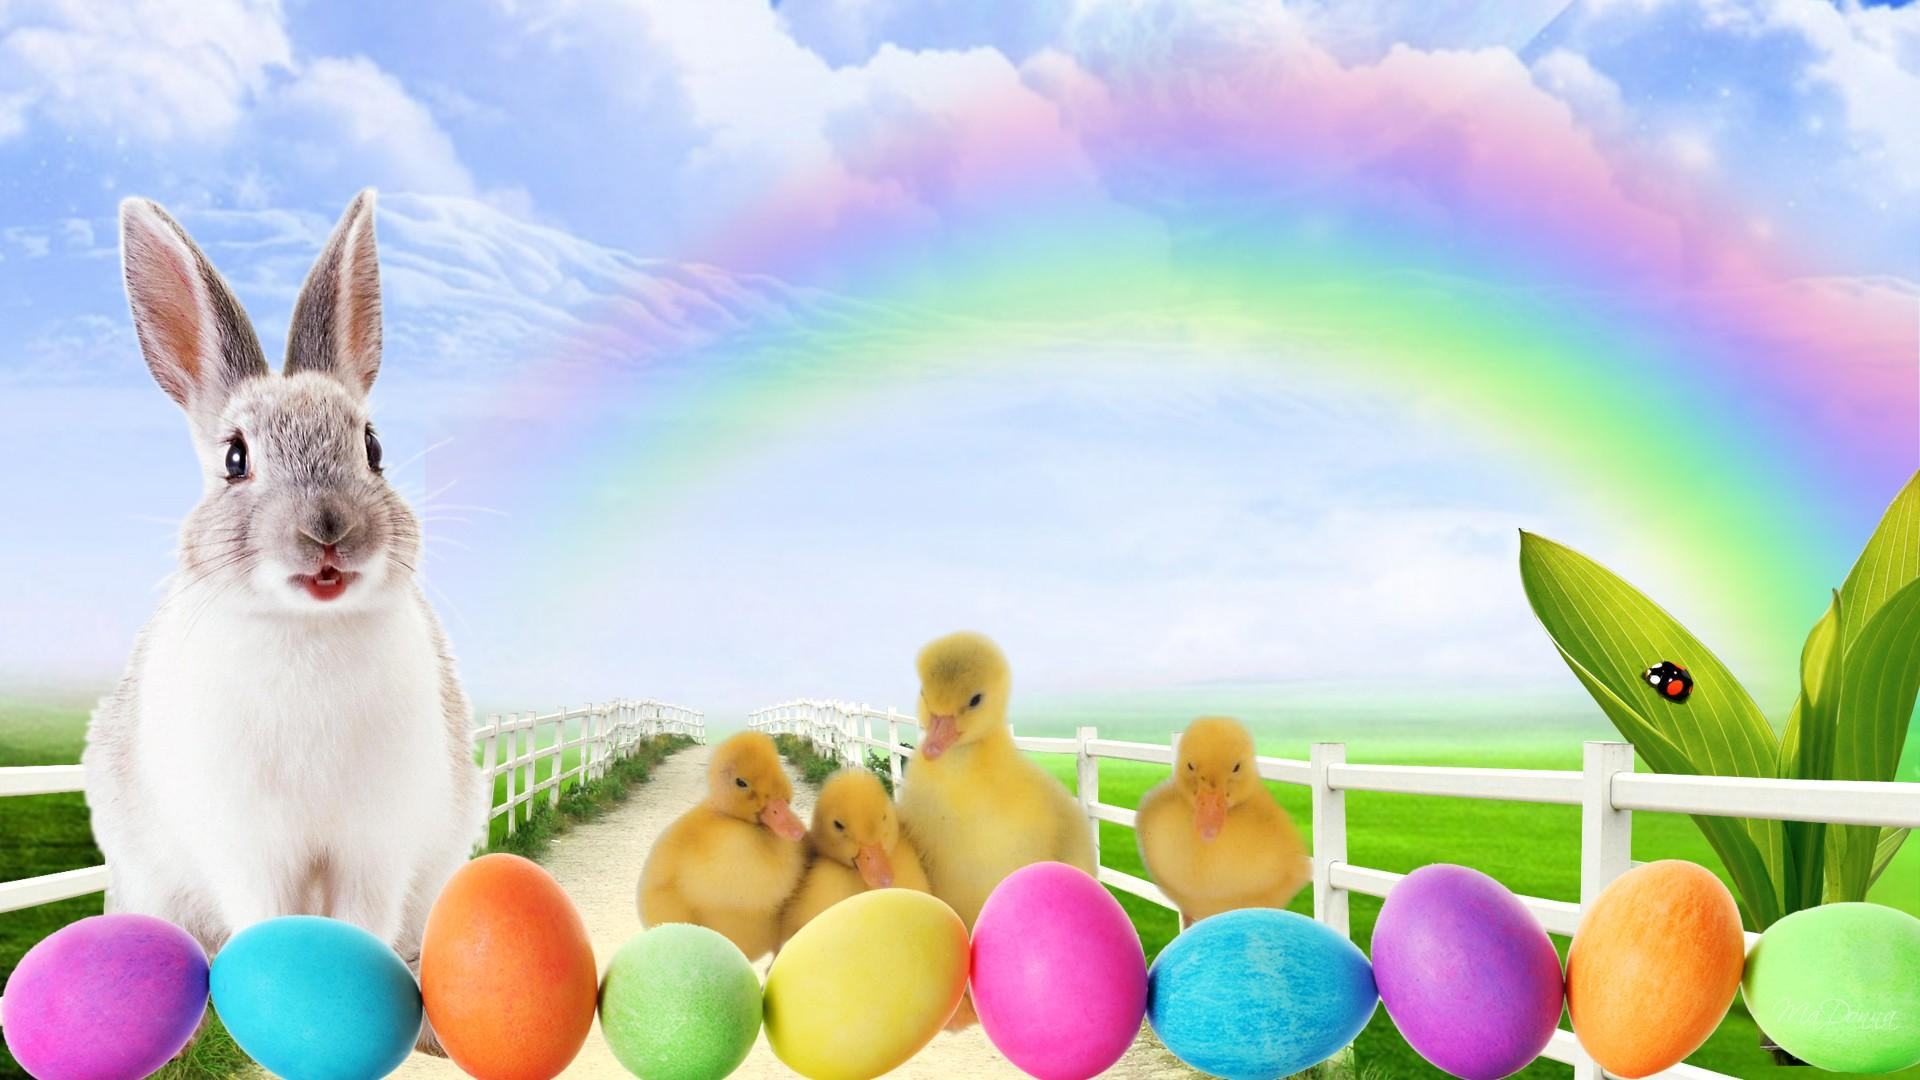 Easter Bunny Backgrounds HD Easter Images 1920x1080